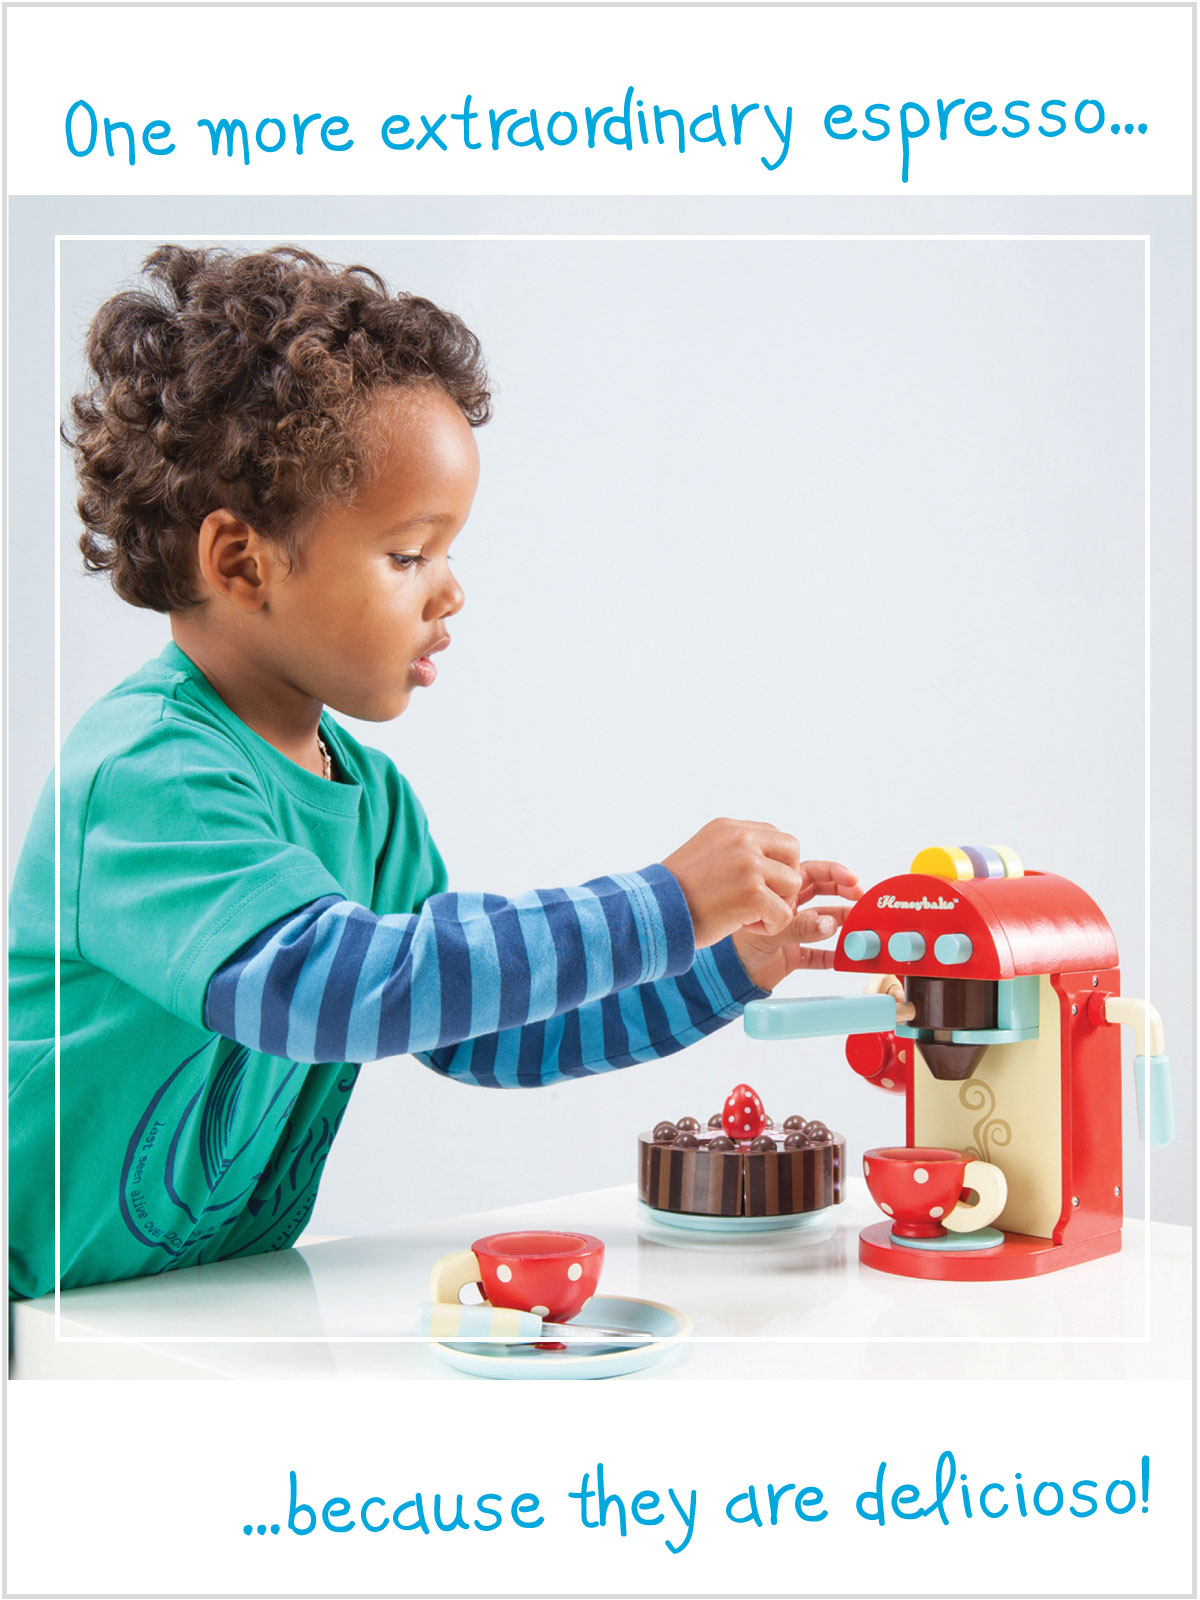 frederickandsophie-kids-play-toys-letoyvan-honeybake-coffee-machine